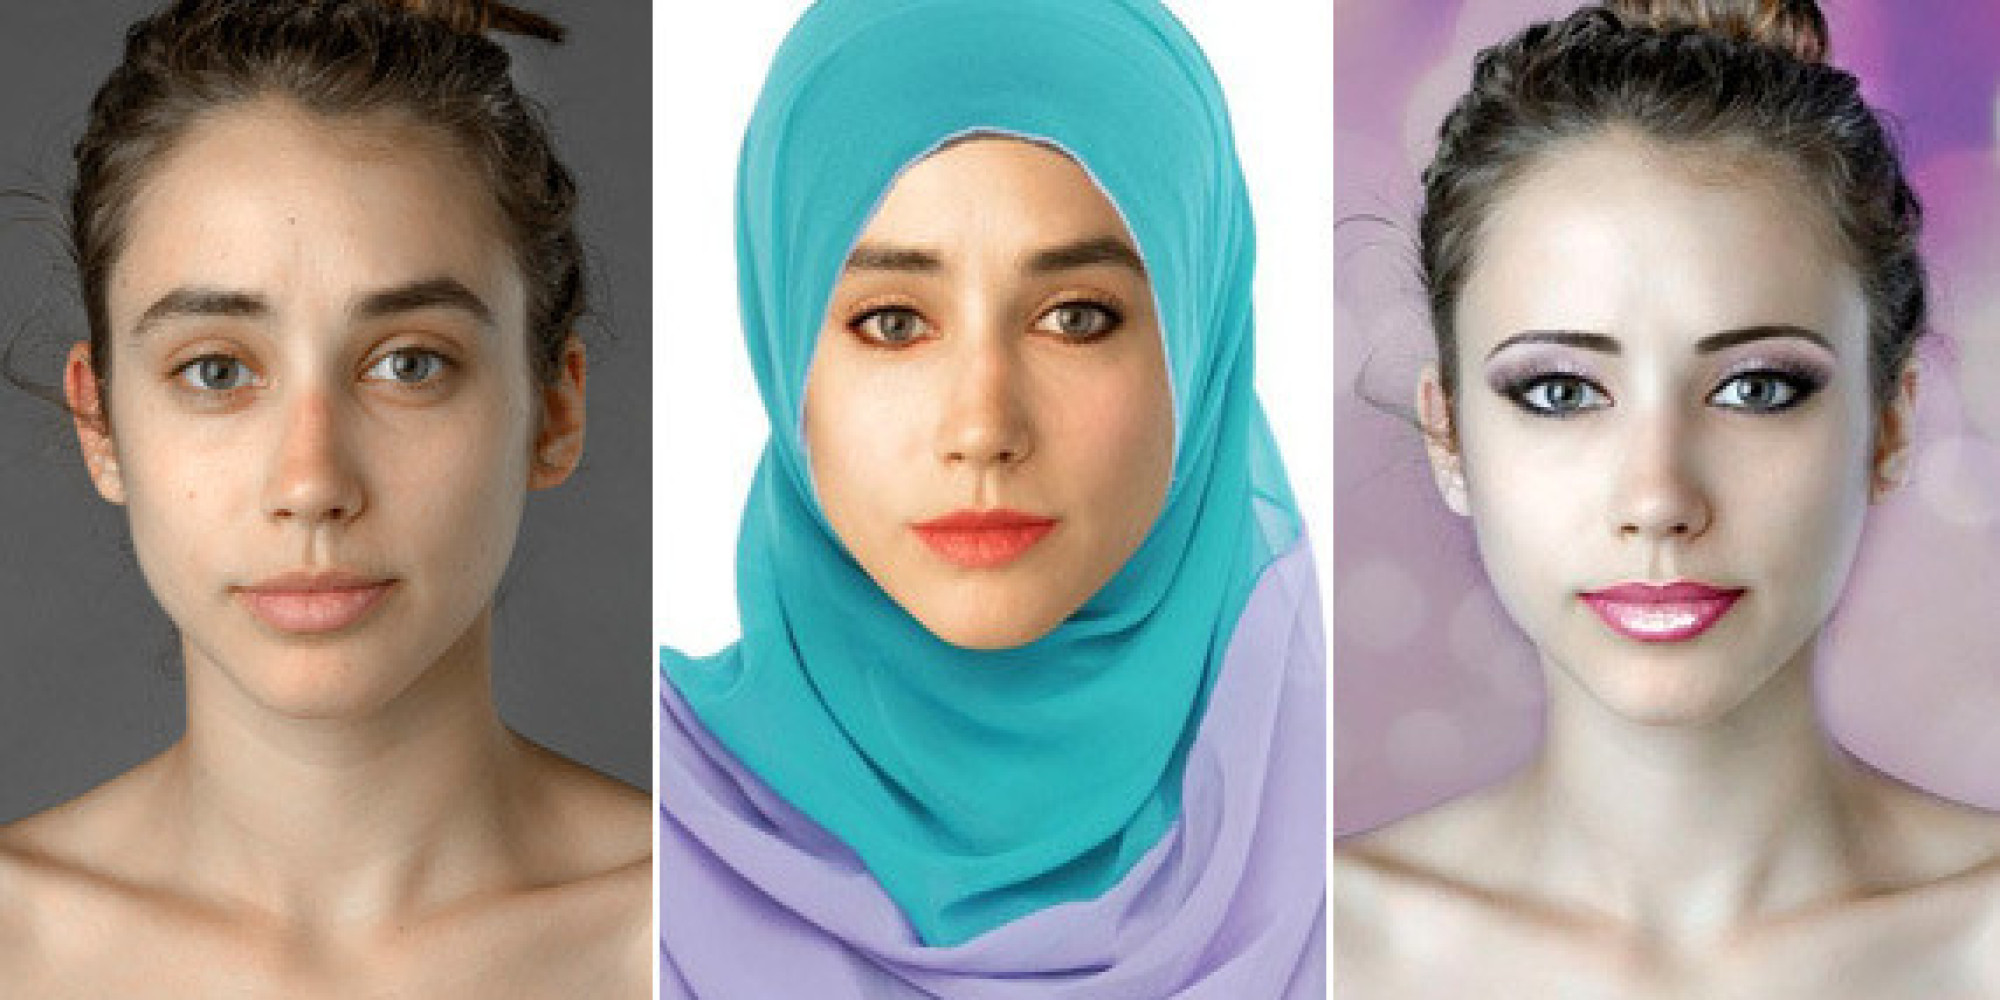 how to put one face on another in photoshop